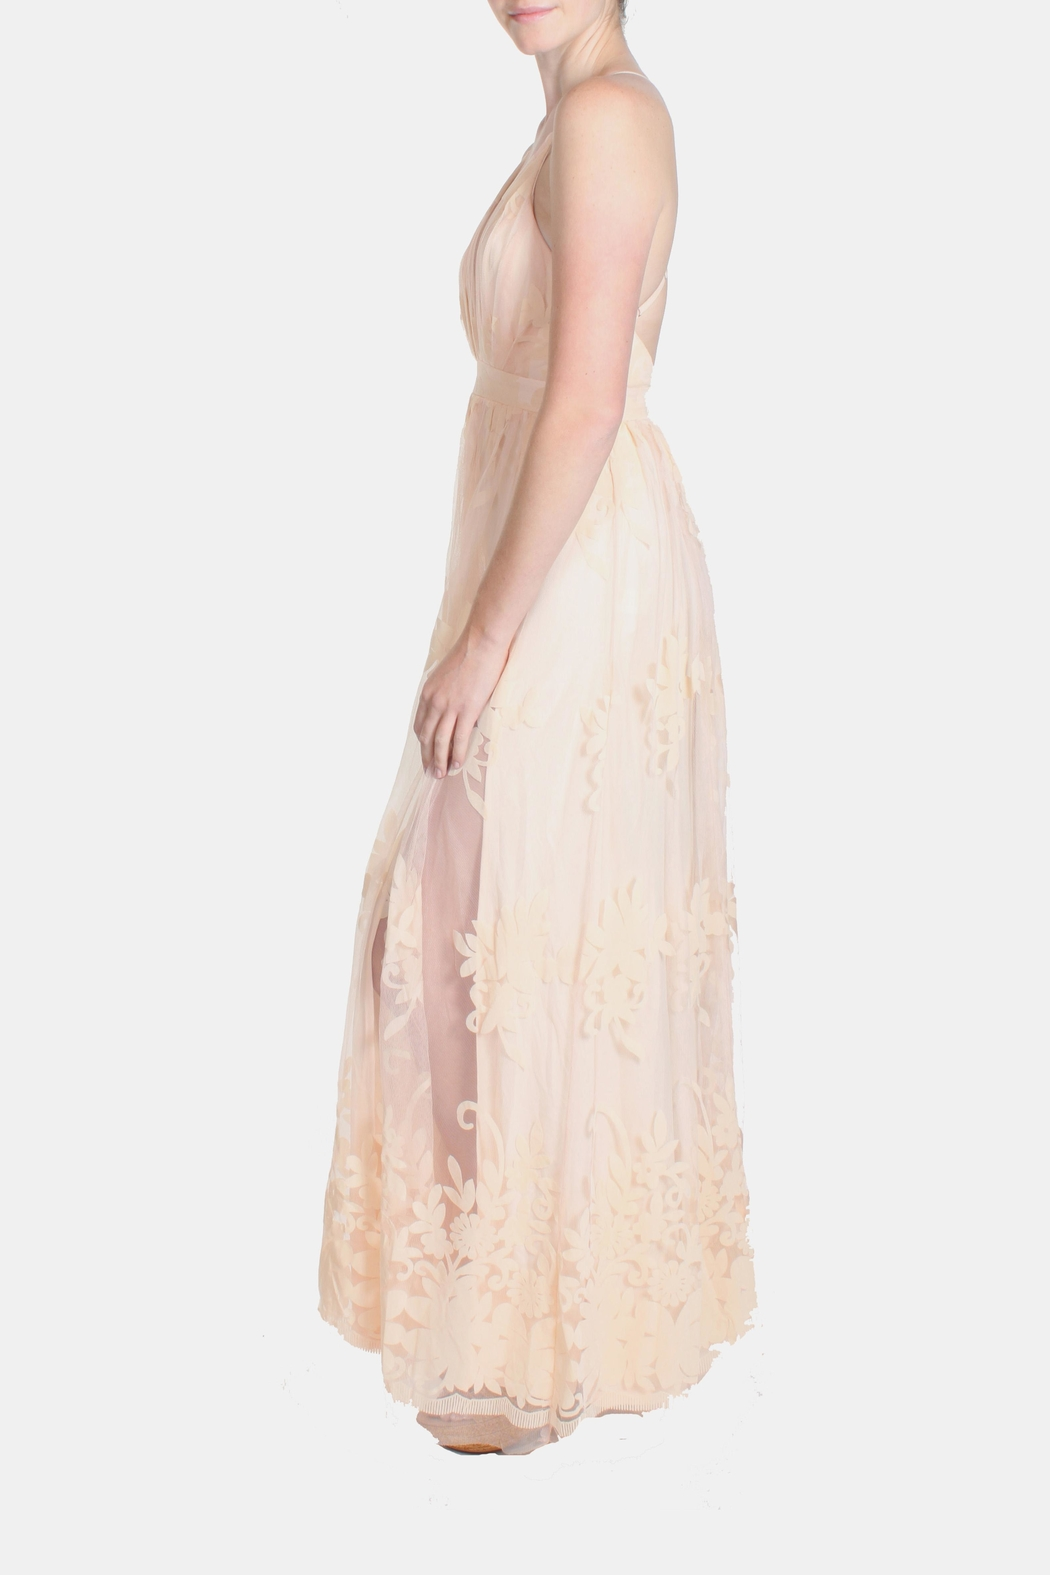 luxxel Pink Monochrome Floral Gown - Side Cropped Image